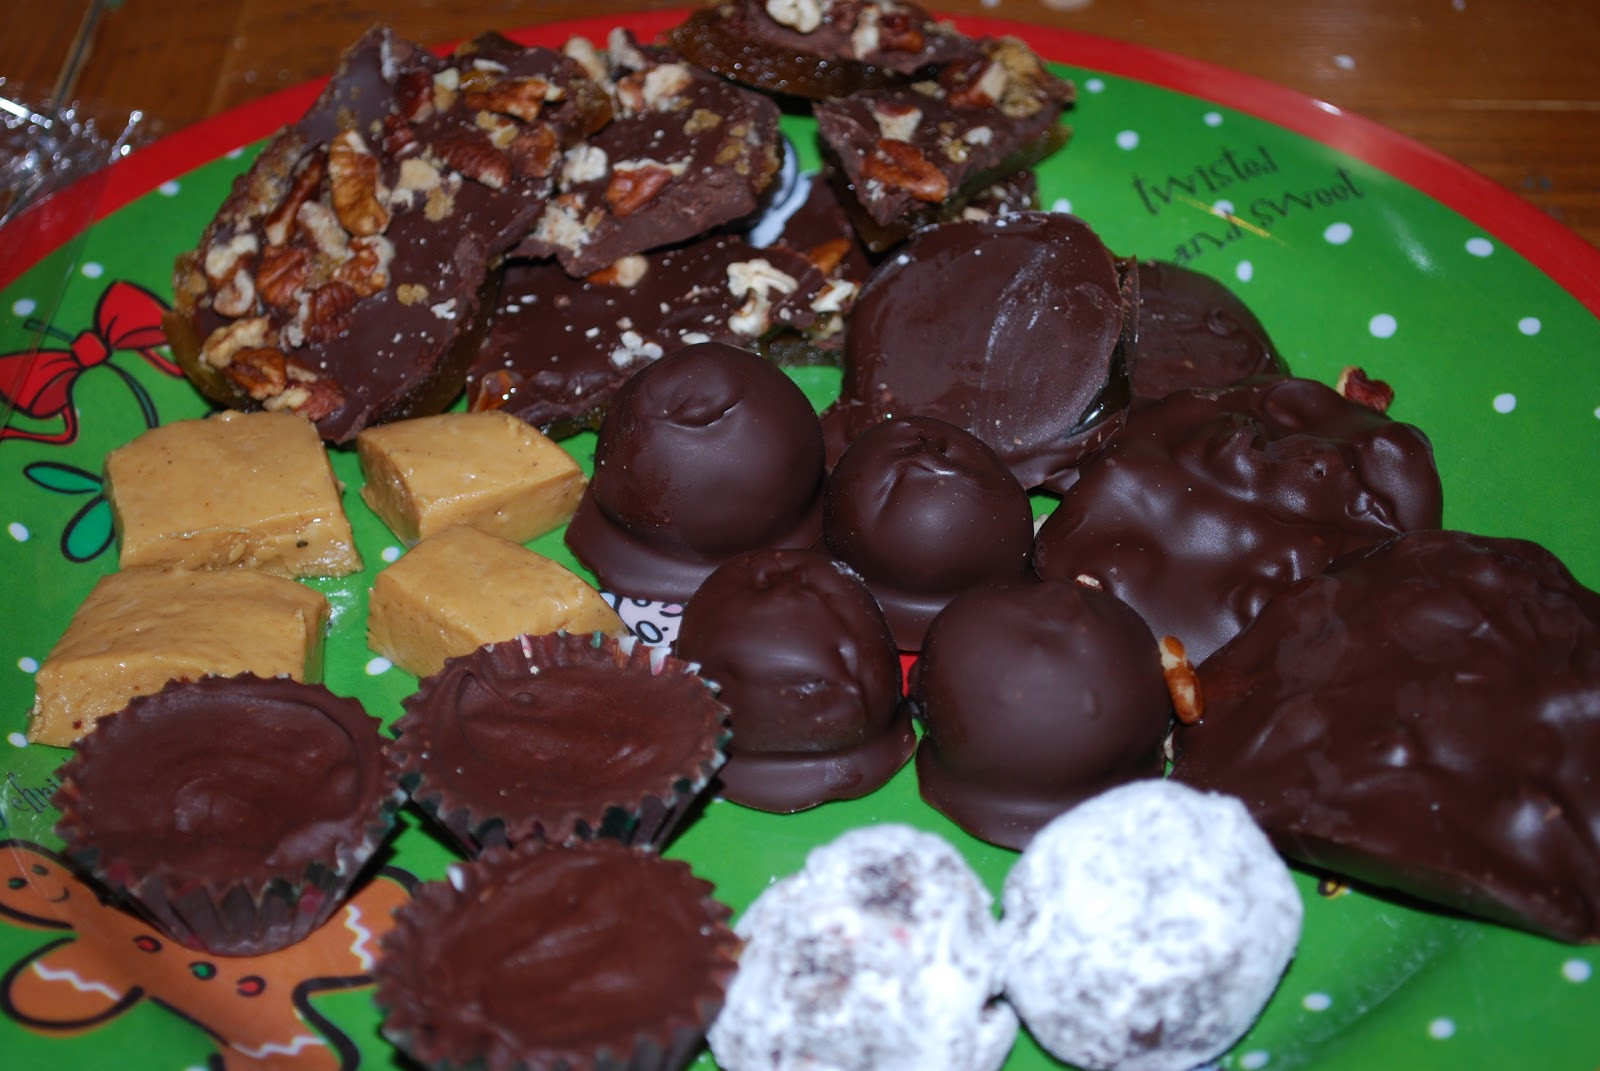 Vegan Candy Recipes Christmas  The Peaceful Kitchen Delicious Vegan Christmas Candy Recipes